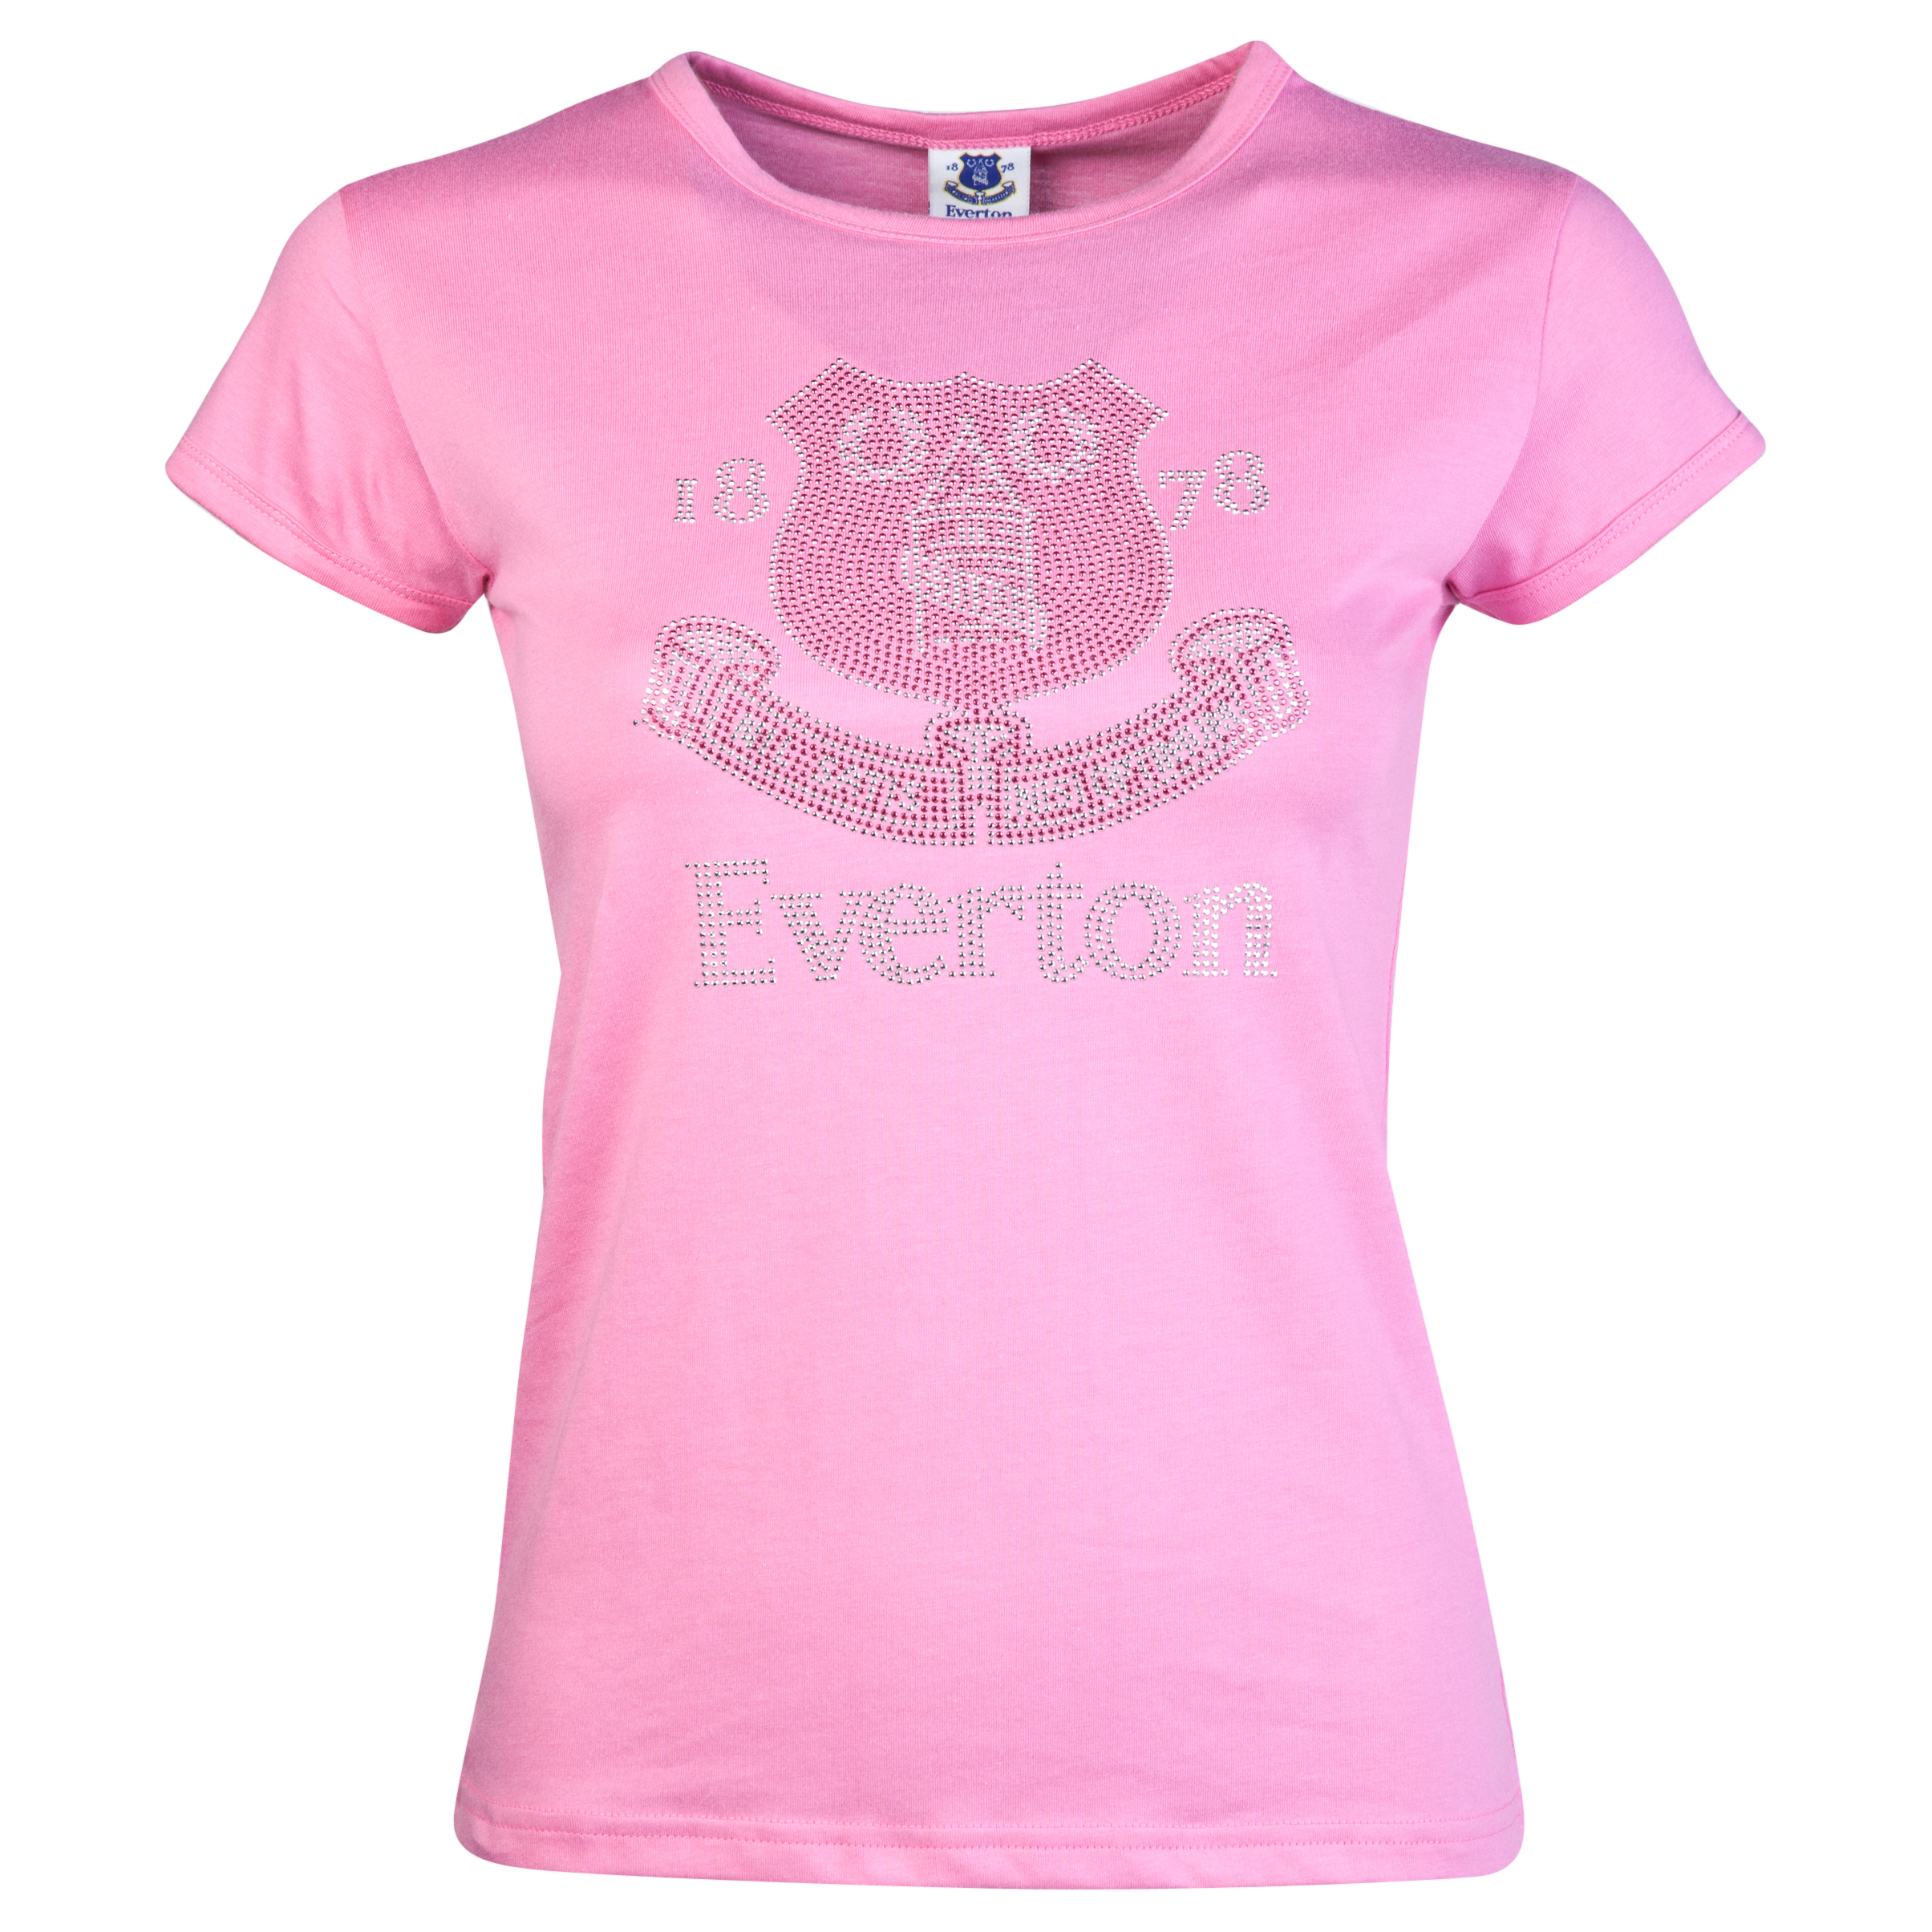 Everton Rhinestone T-Shirt - Pink - Womens